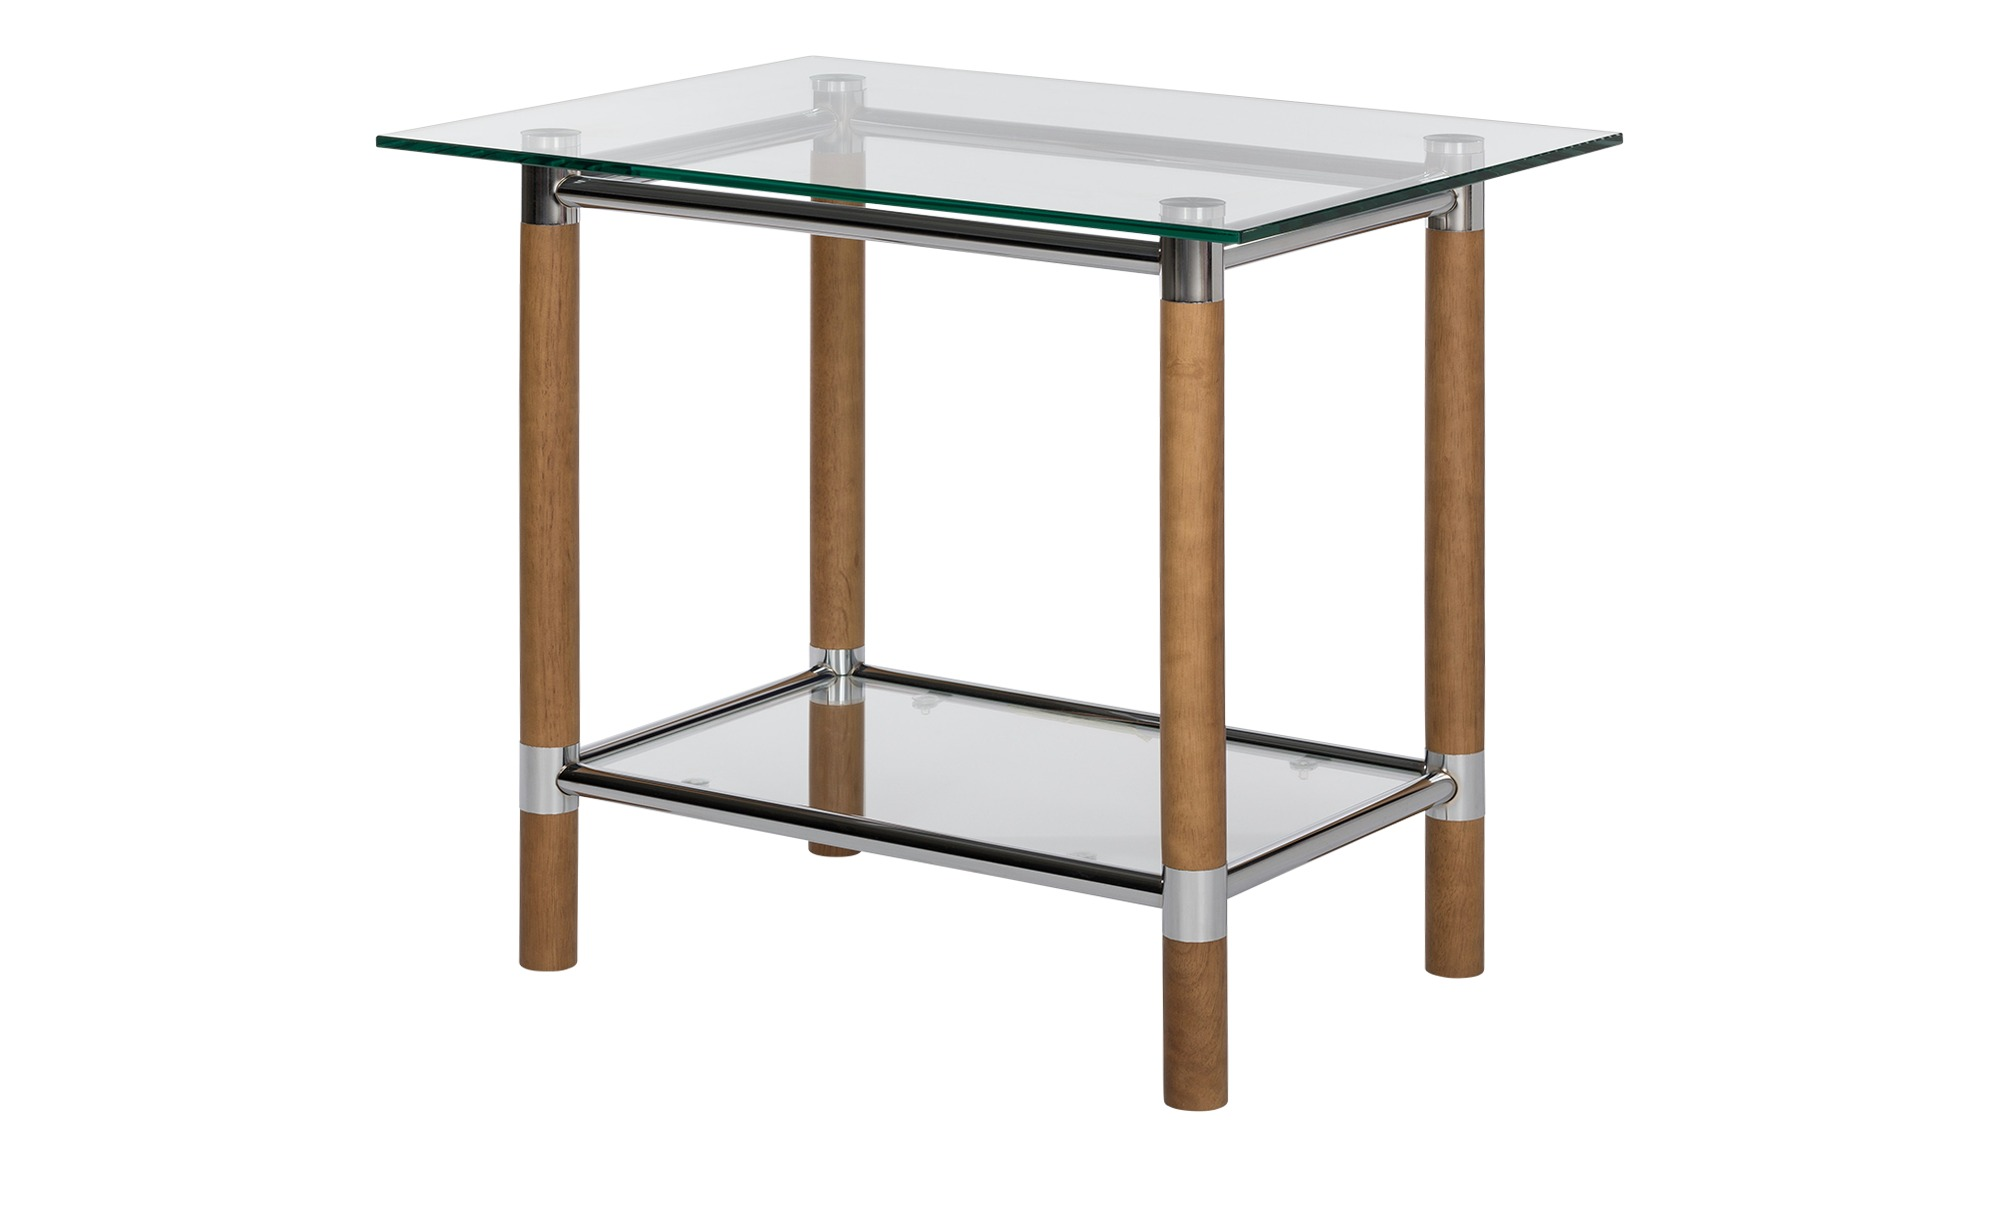 Glas Couchtisch Denver Chrom Glas Good Couchtisch Chrom Glas Klar With Chrom Glas Chrom